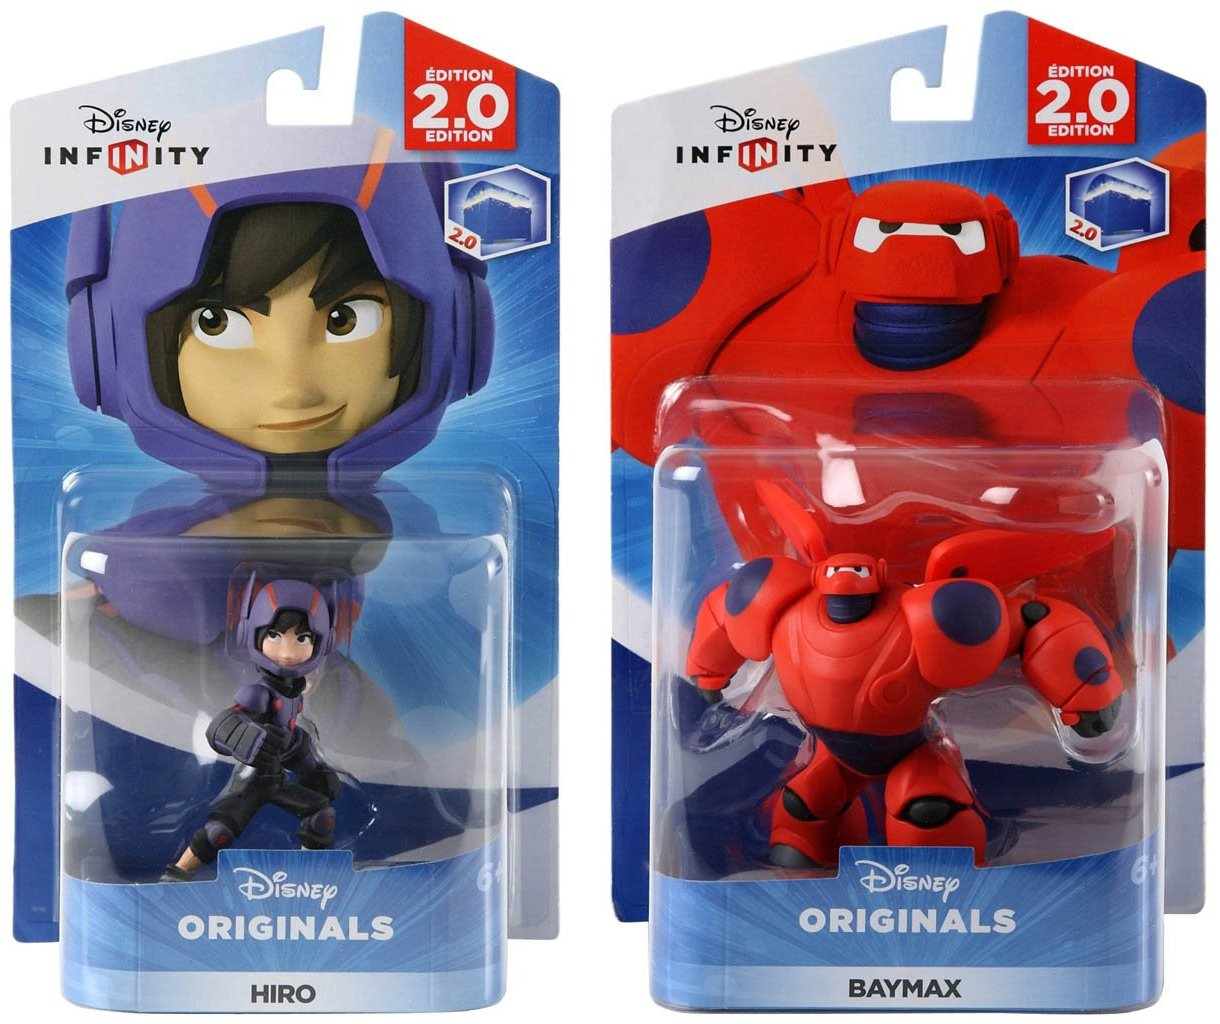 Disney INFINITY Originals - Hiro and Baymax Figures from Big Hero 6 Character Bundle